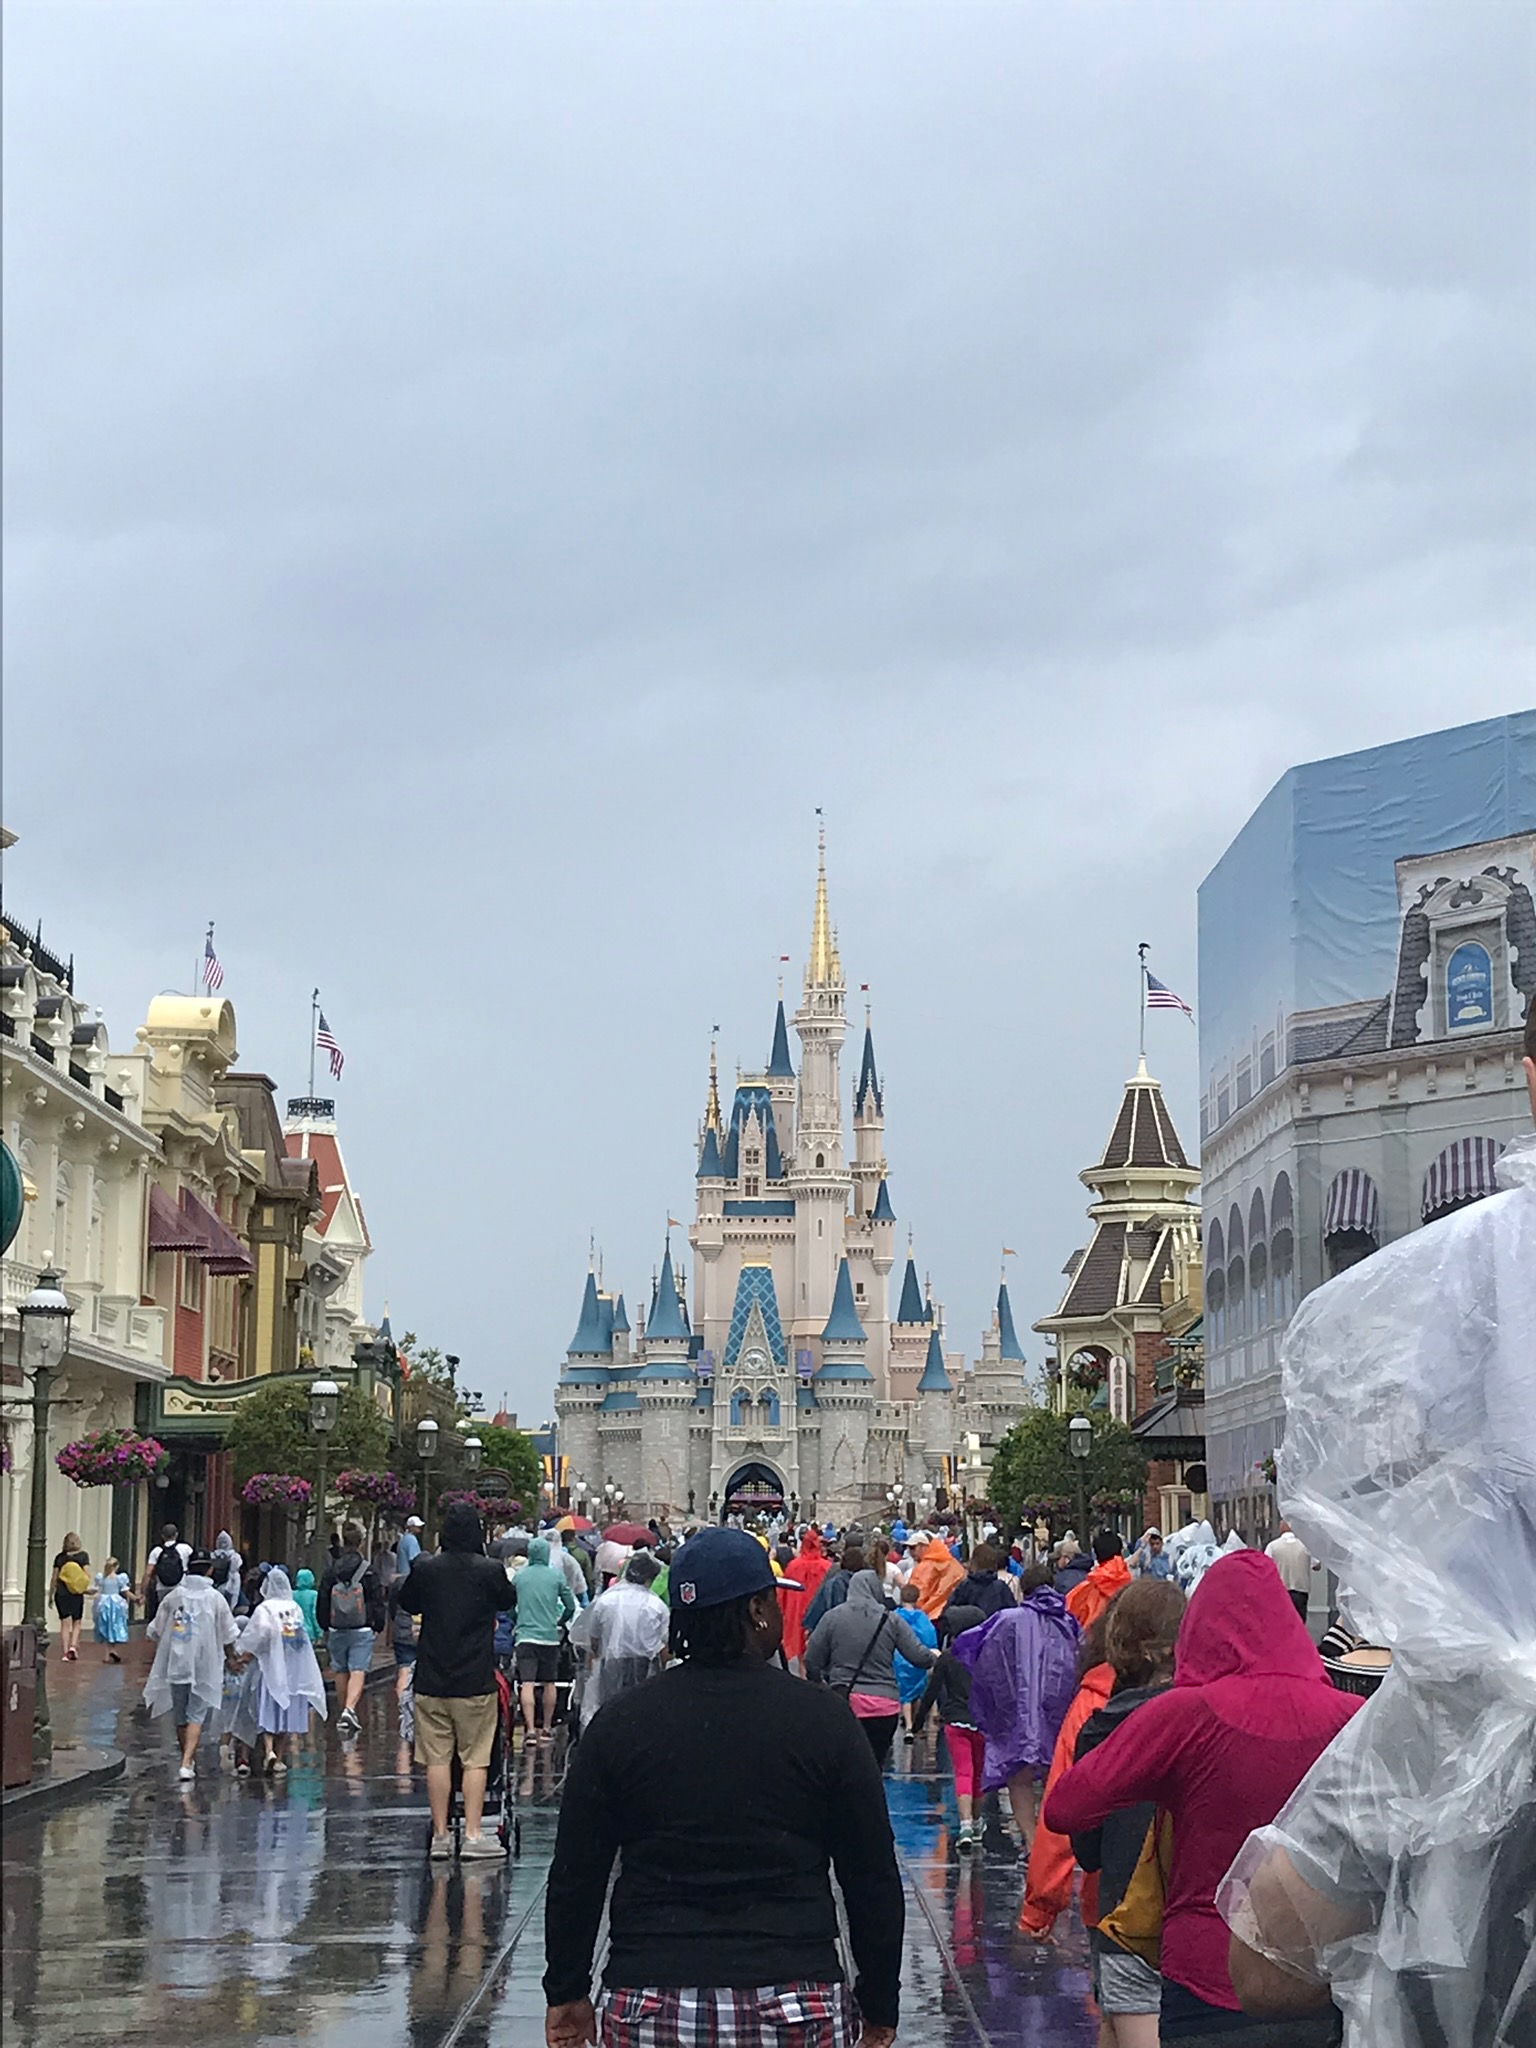 Cinderella's Castle. And people scared of rain.